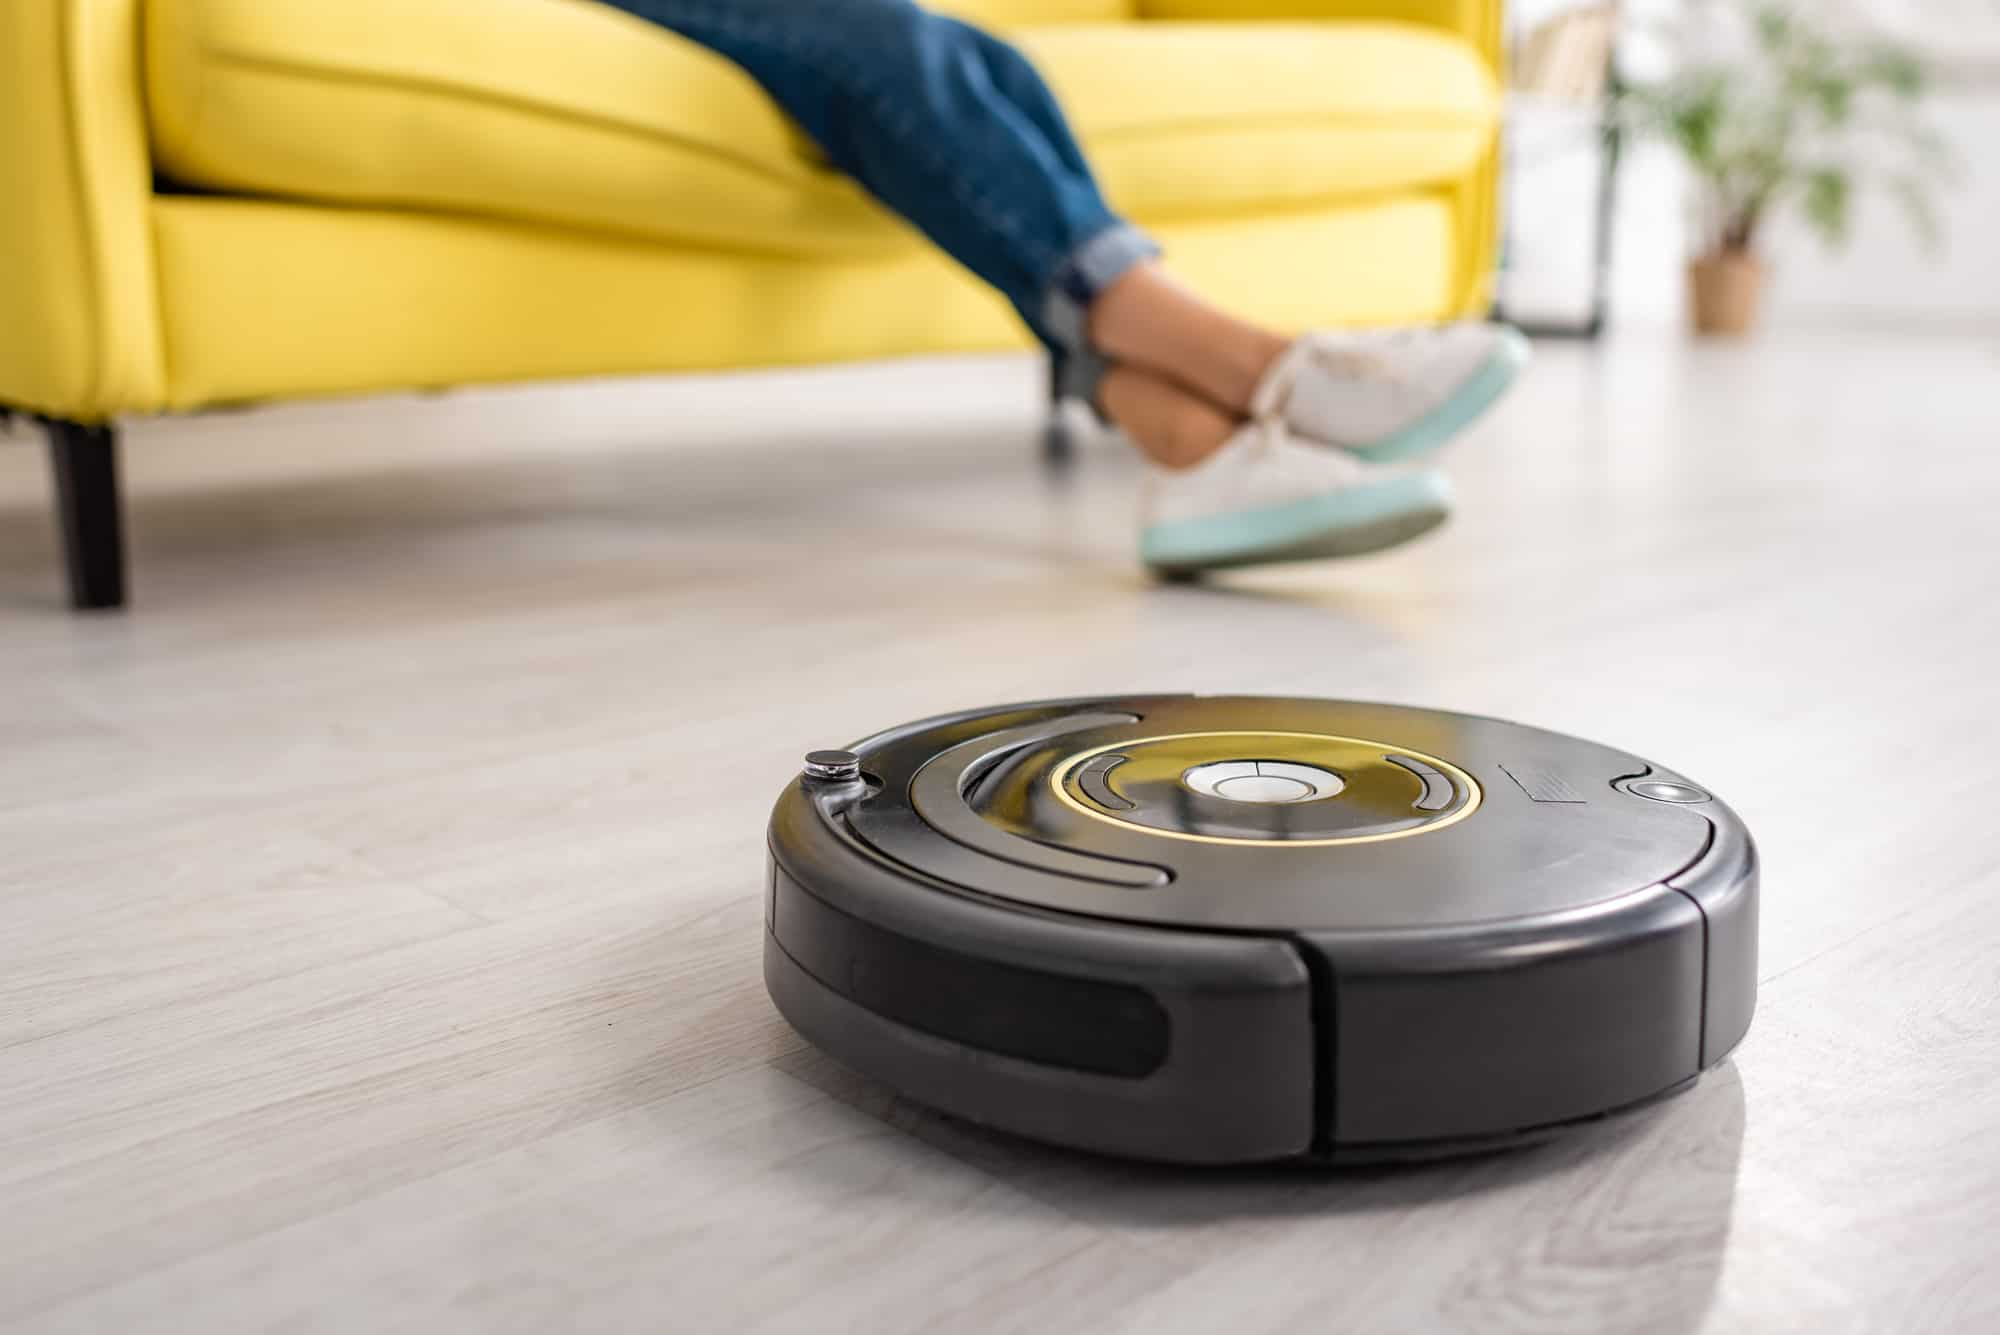 What Features Should You Look For When Buying A Robot Vacuum?